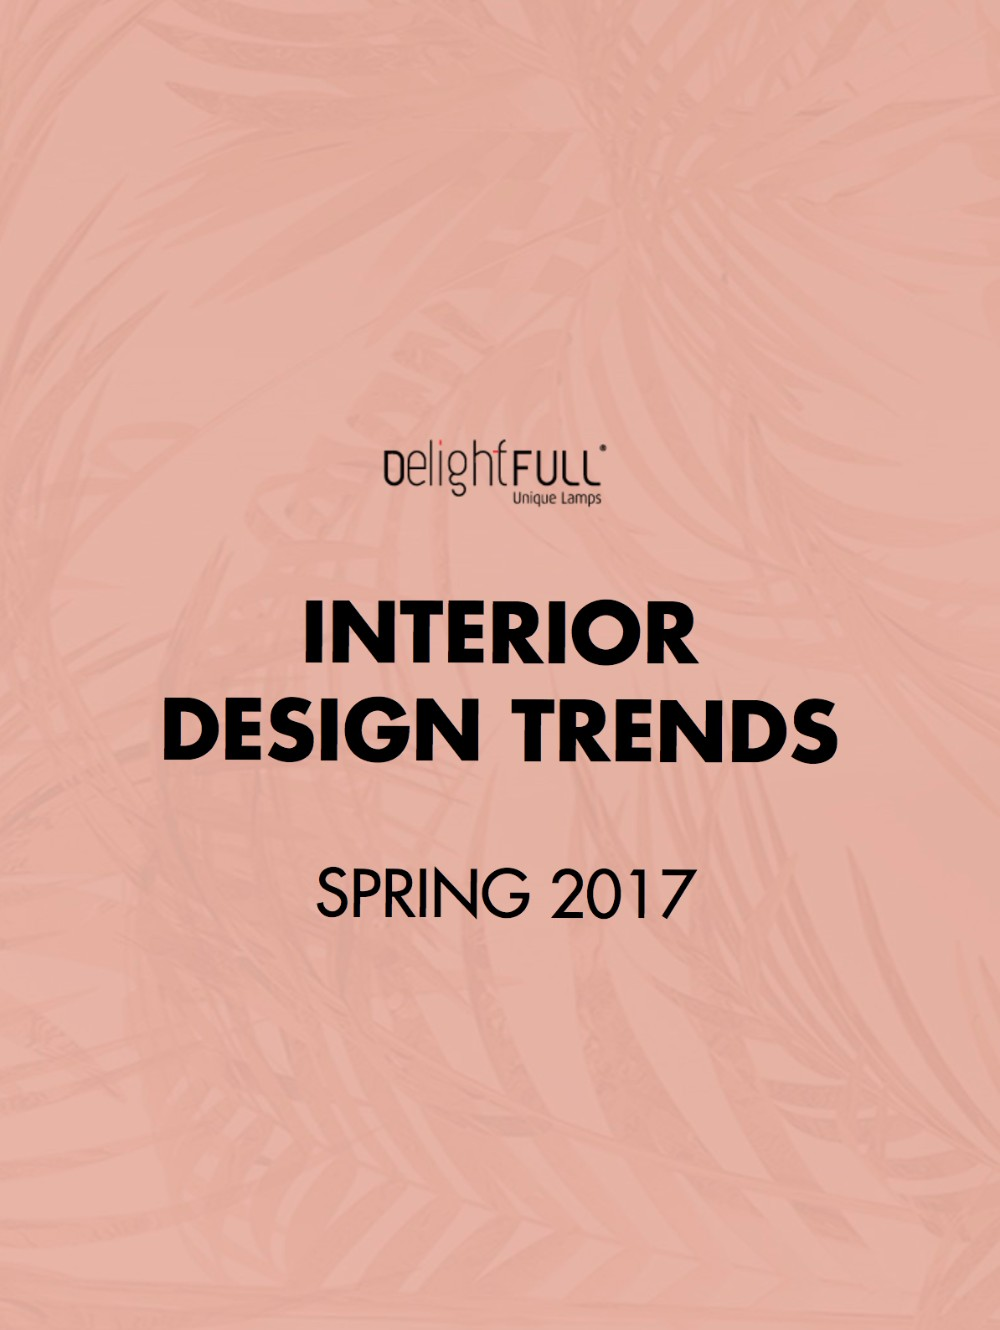 'Interior Design Trends Spring 2017', The Ebook You Must Have! (1) interior design trends 'Interior Design Trends: Spring 2017′, The Ebook You Must Have!    Interior Design Trends Spring 2017 The Ebook You Must Have 4 1